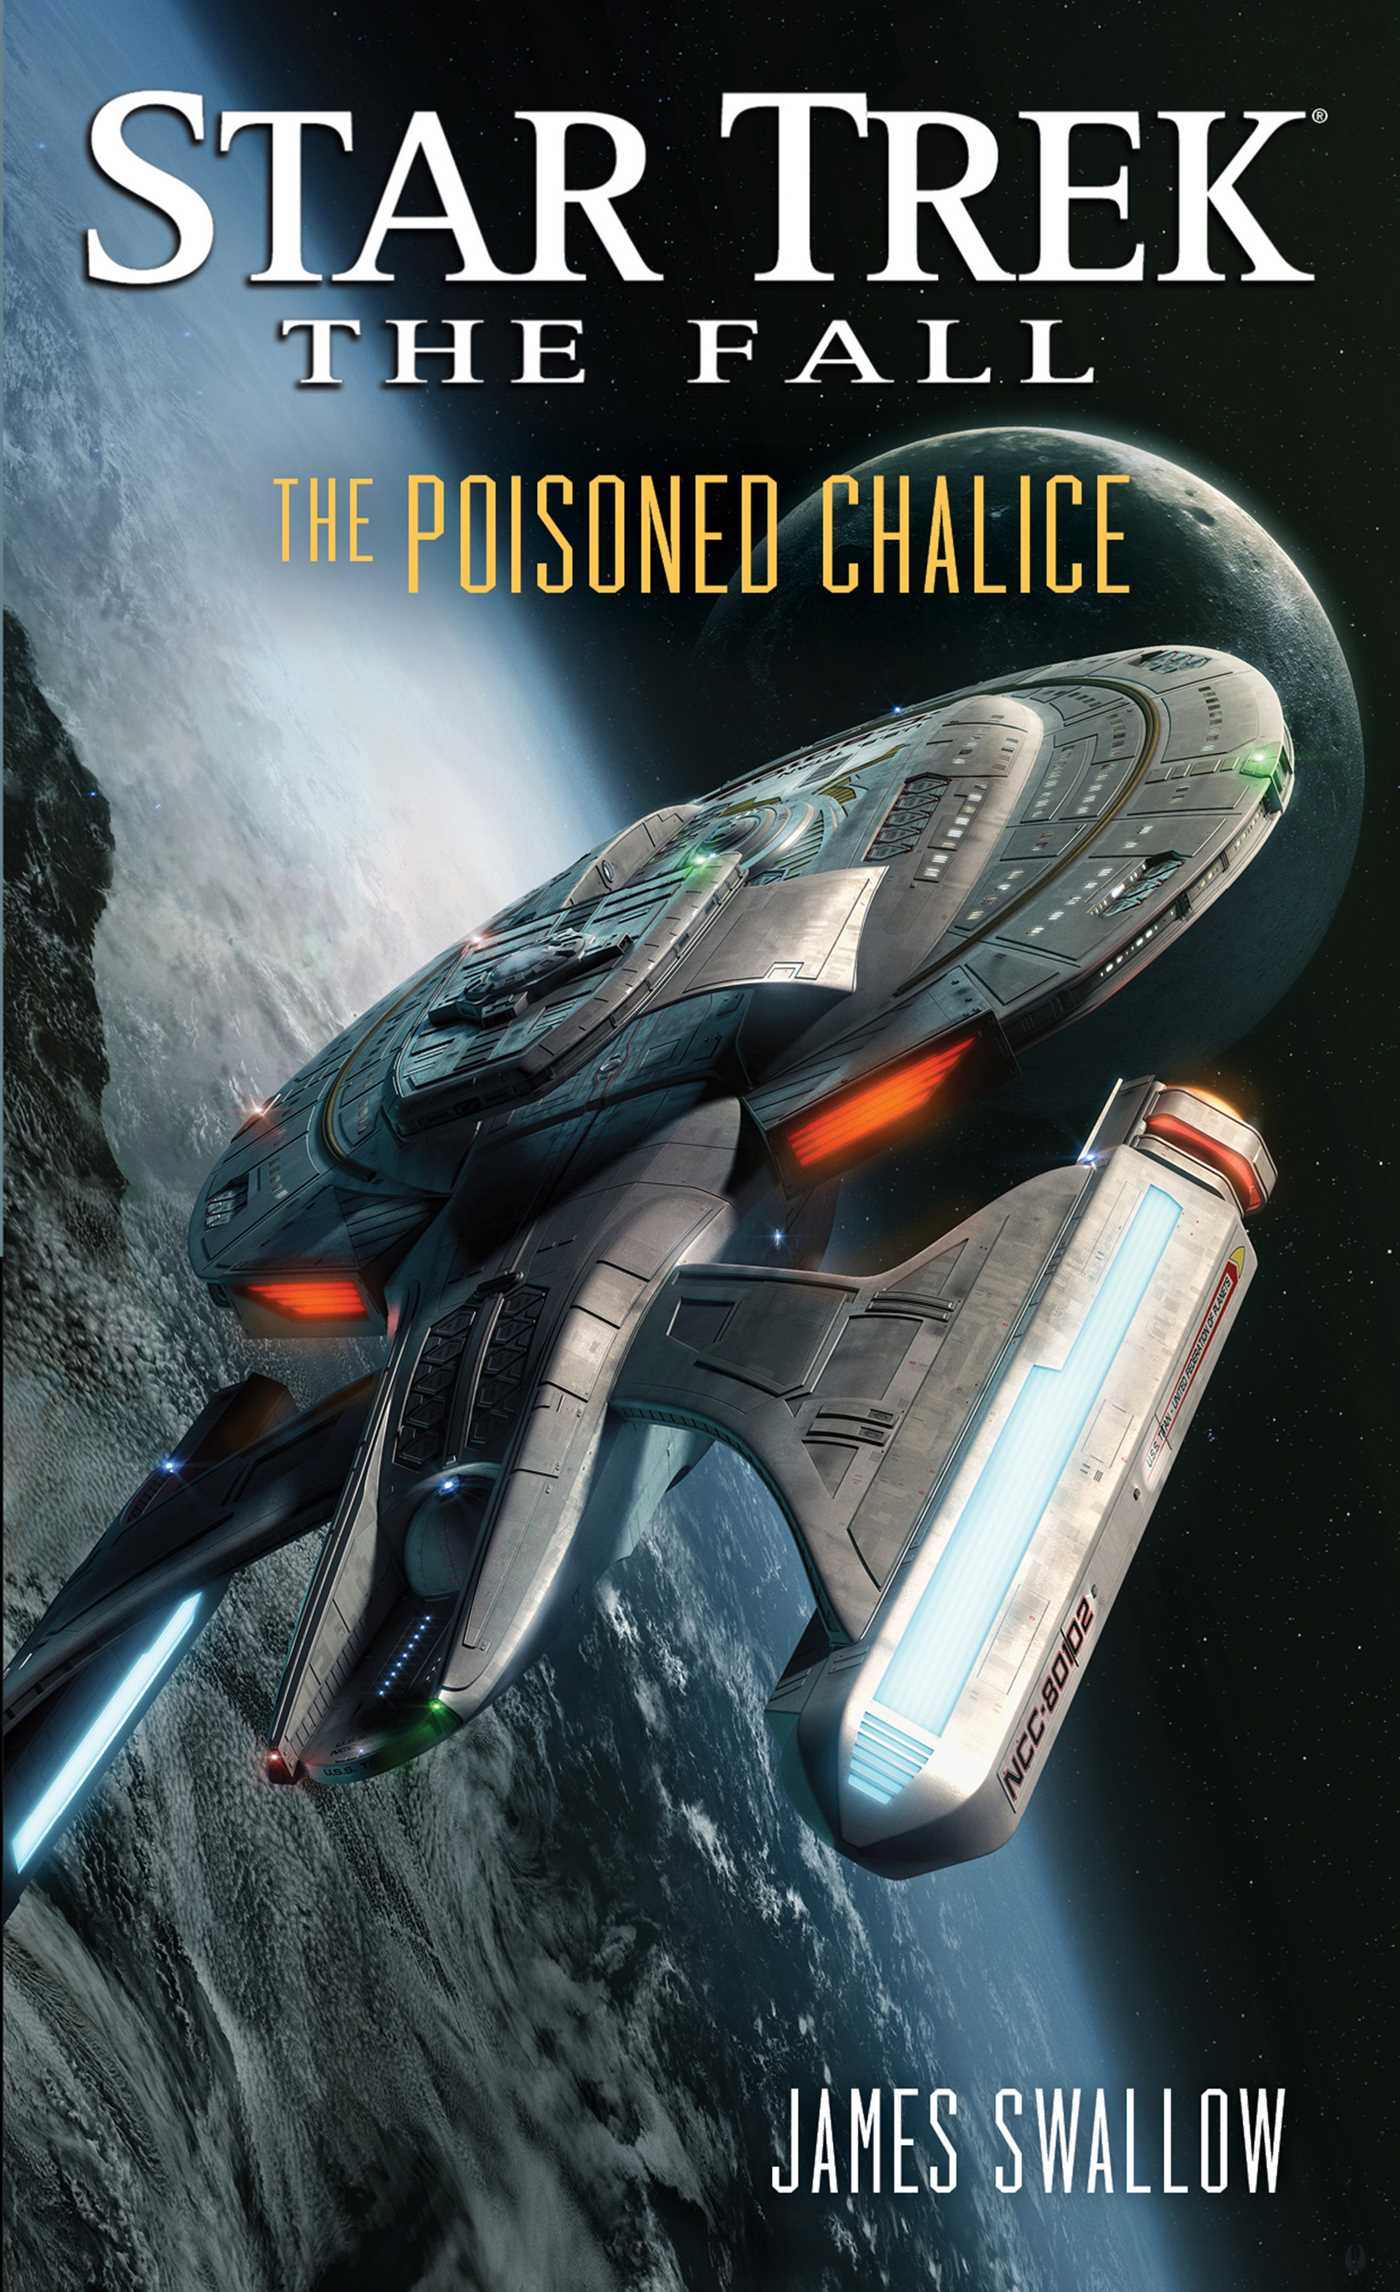 The fall the poisoned chalice 9781476722276 hr